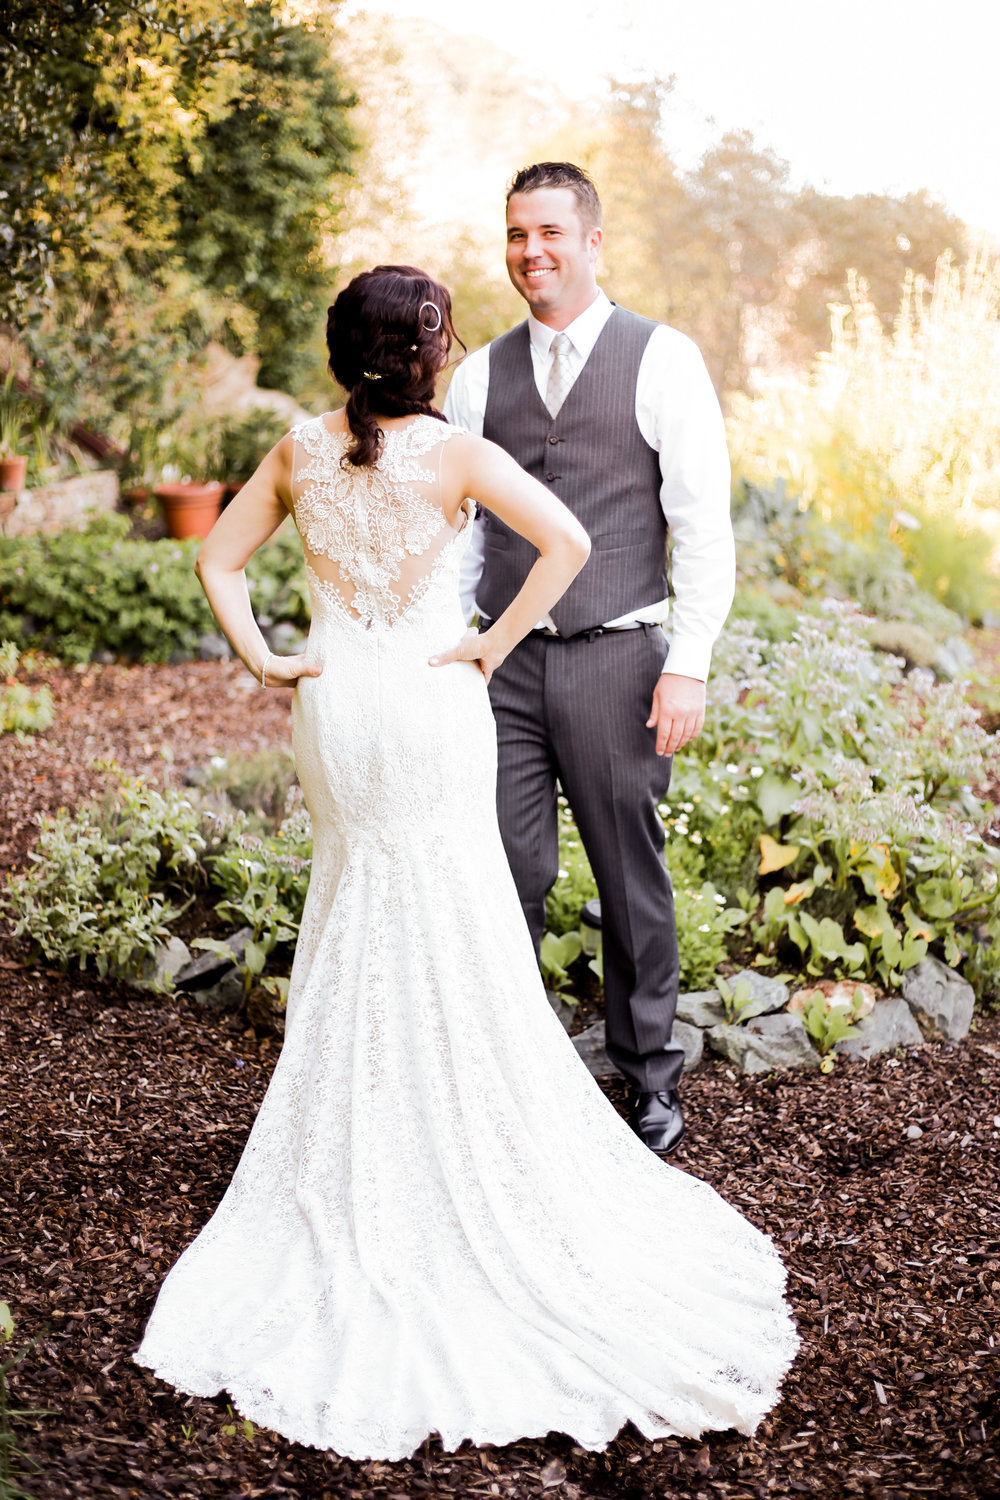 alexandra-rice-photography-shadowbrook-capitola-santa cruz-wedding-bride-groom-portrait-garden.jpg